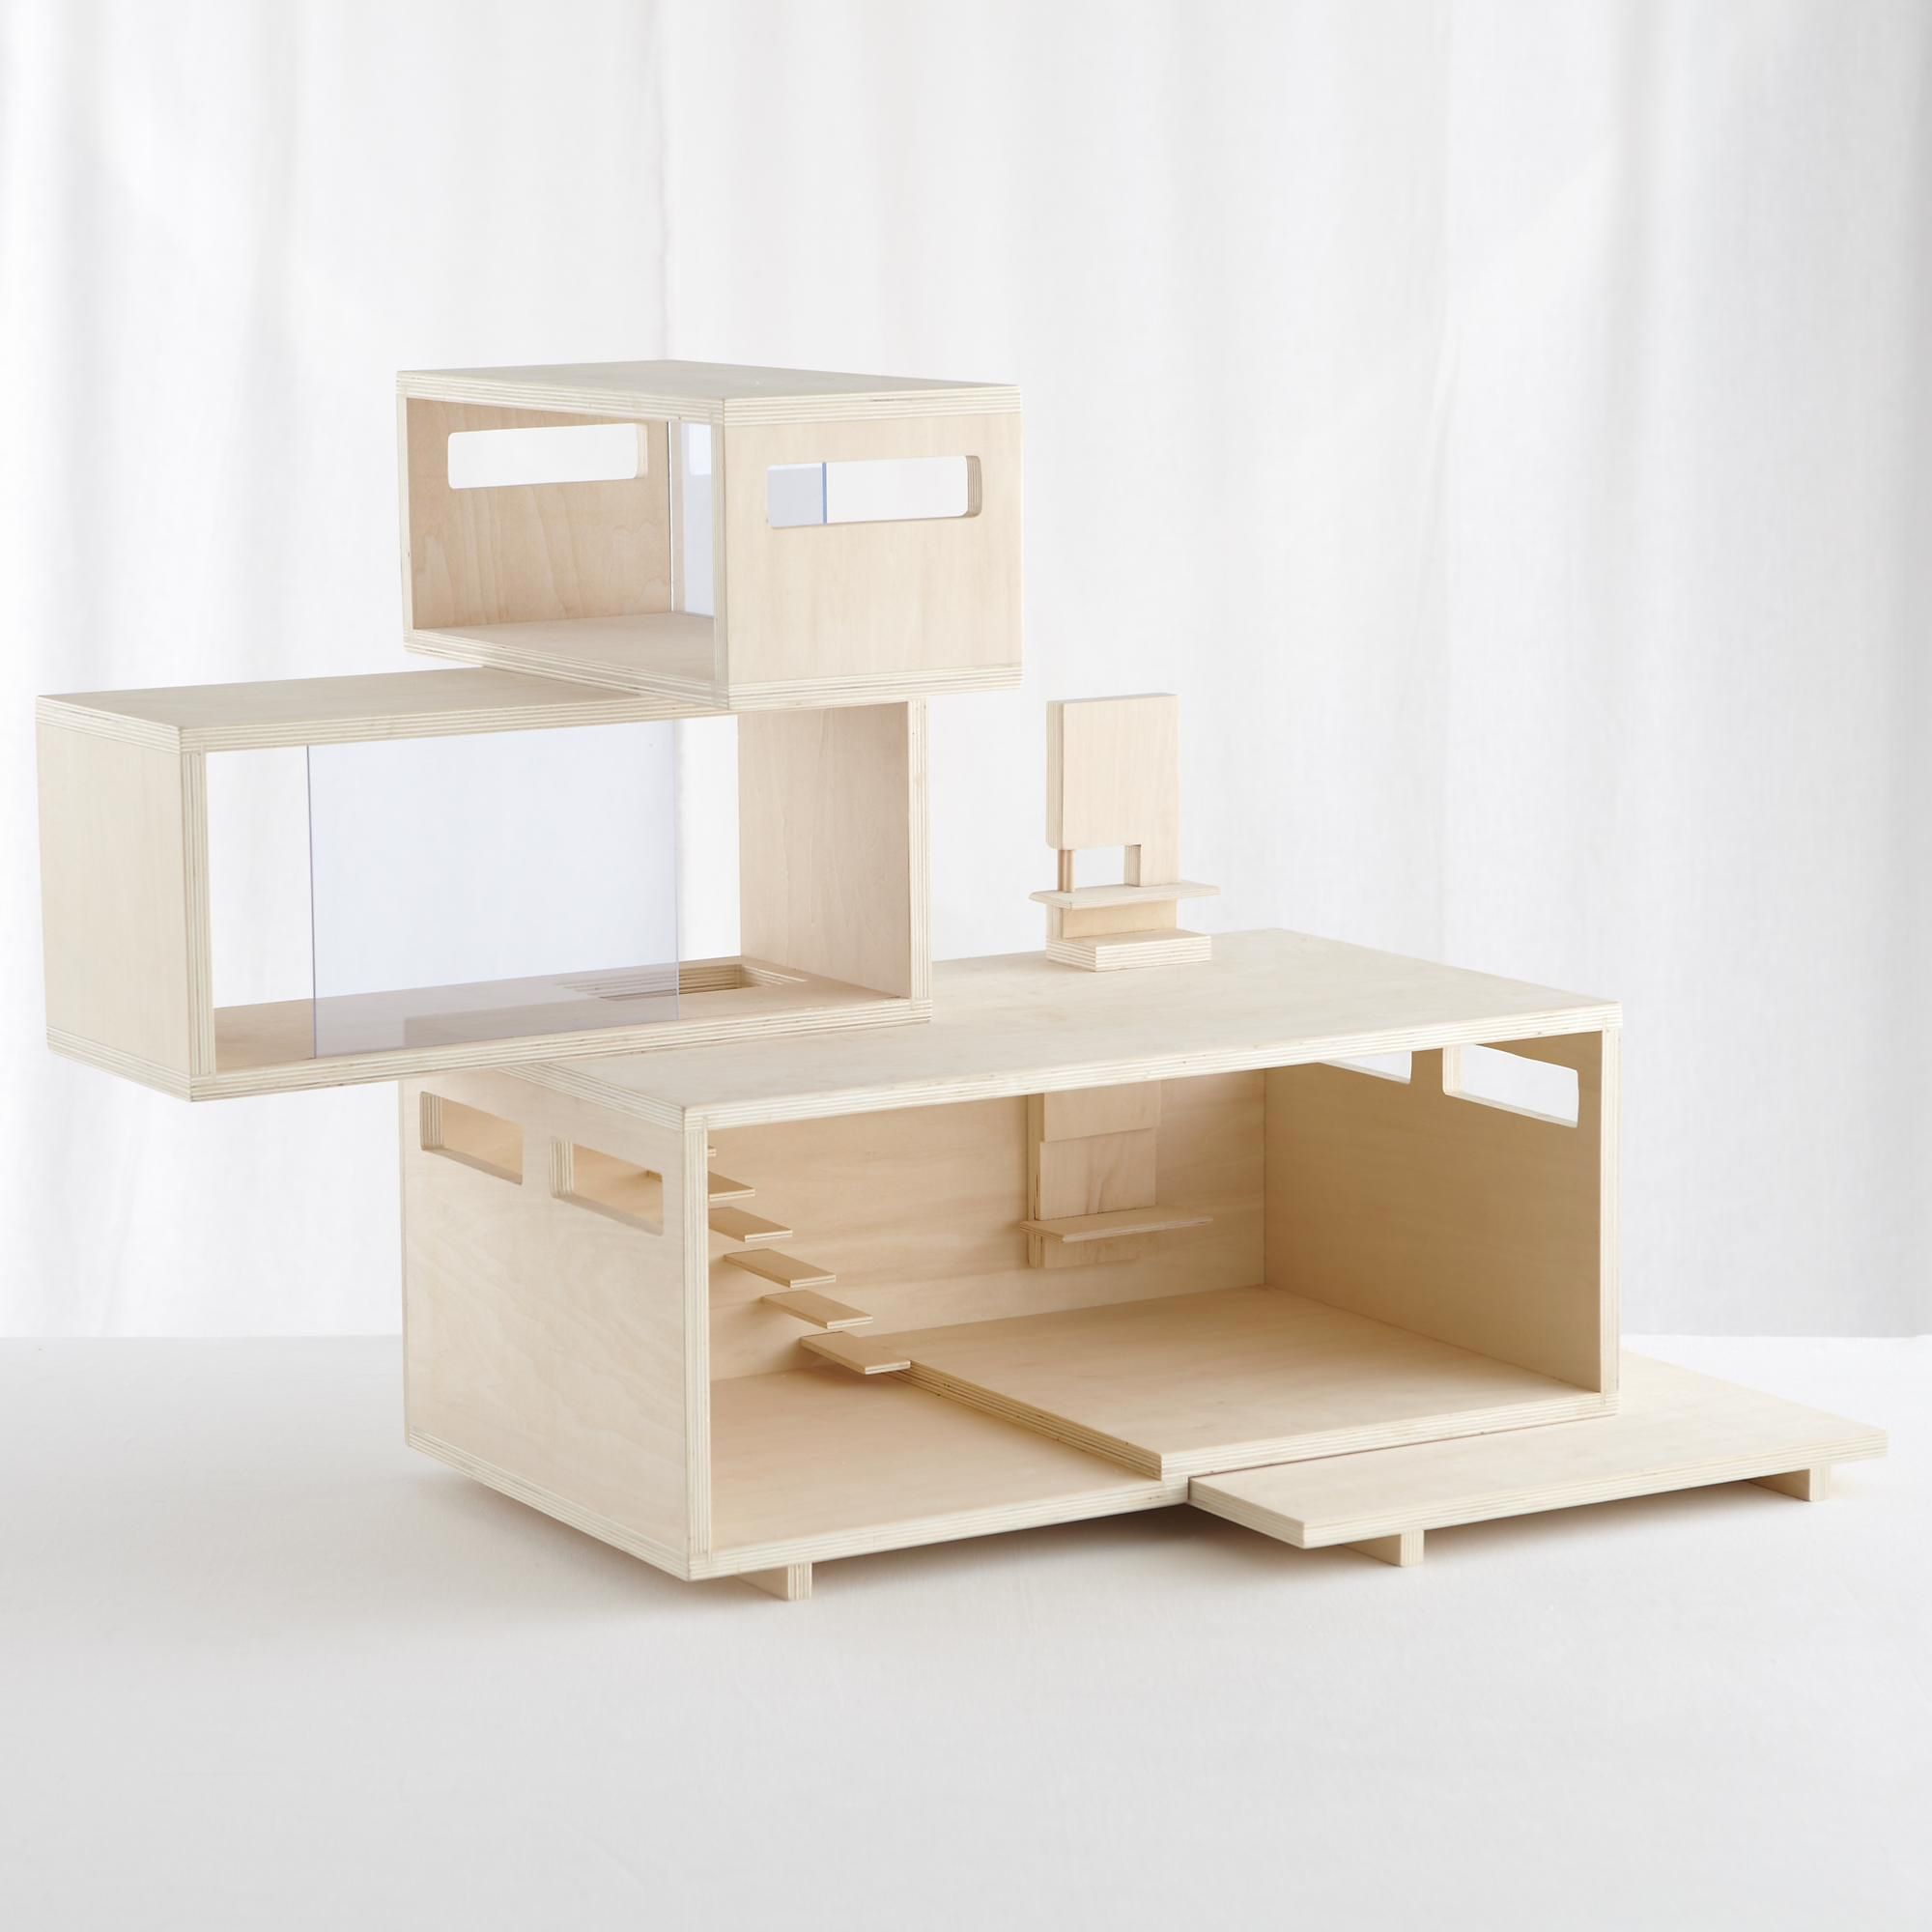 modern dolls house furniture. girls dollhouse modern and furniture set in imaginary play dolls house